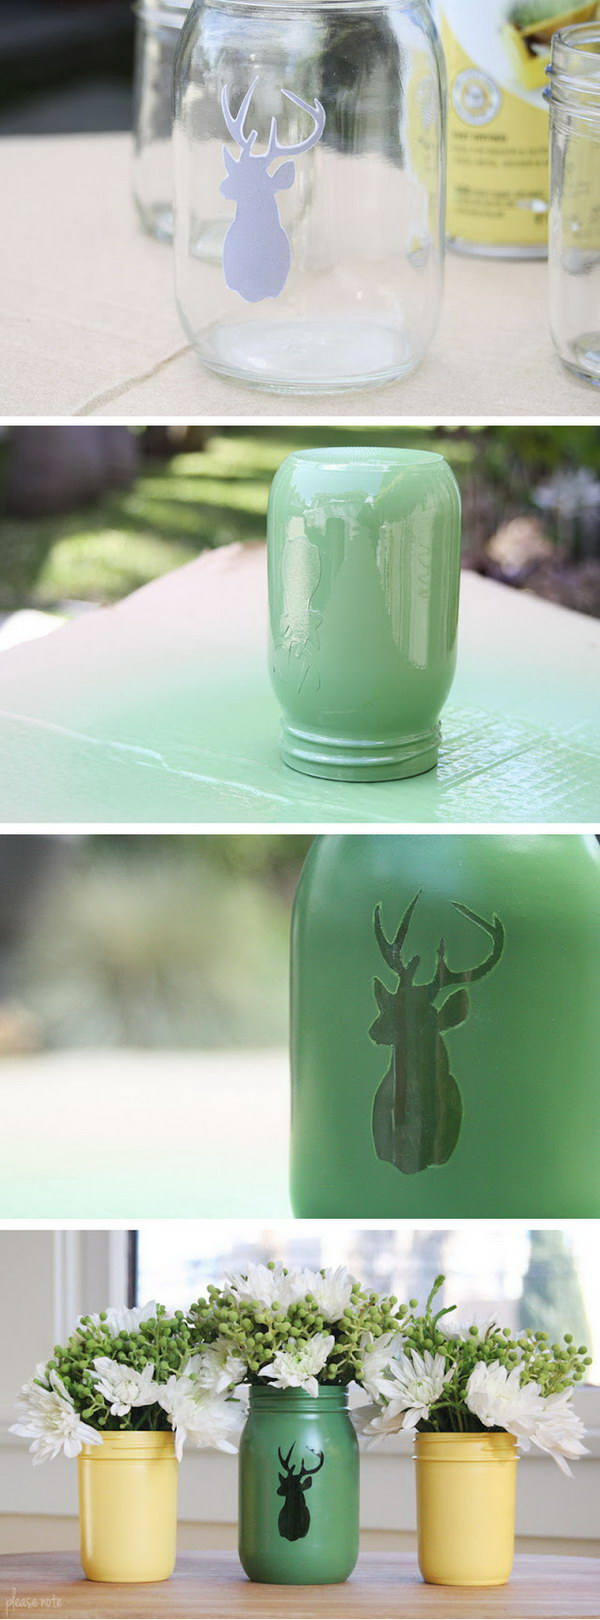 DIY Stenciled Mason Jar Vase.